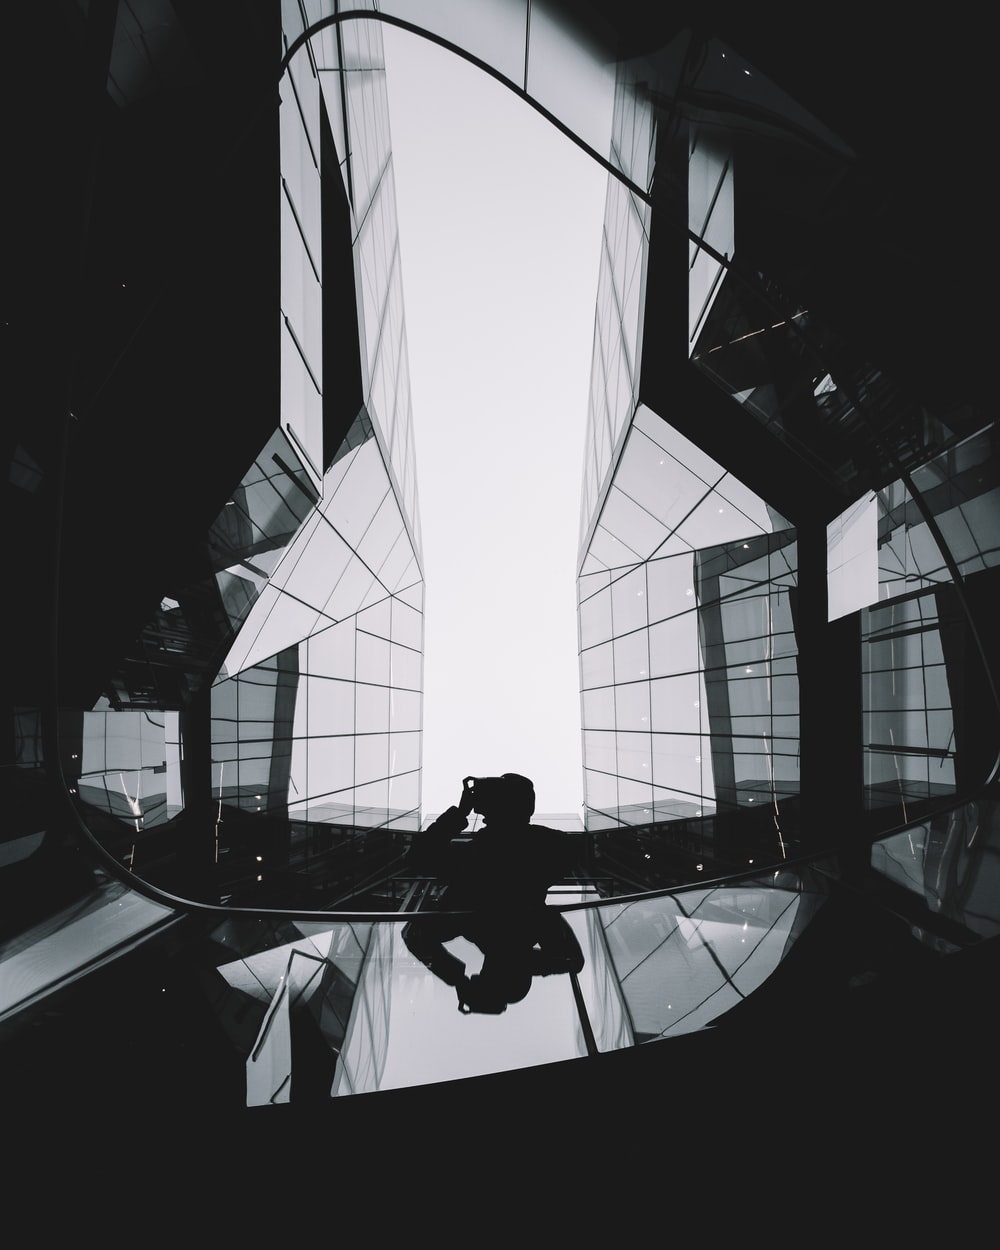 person in between the glass building